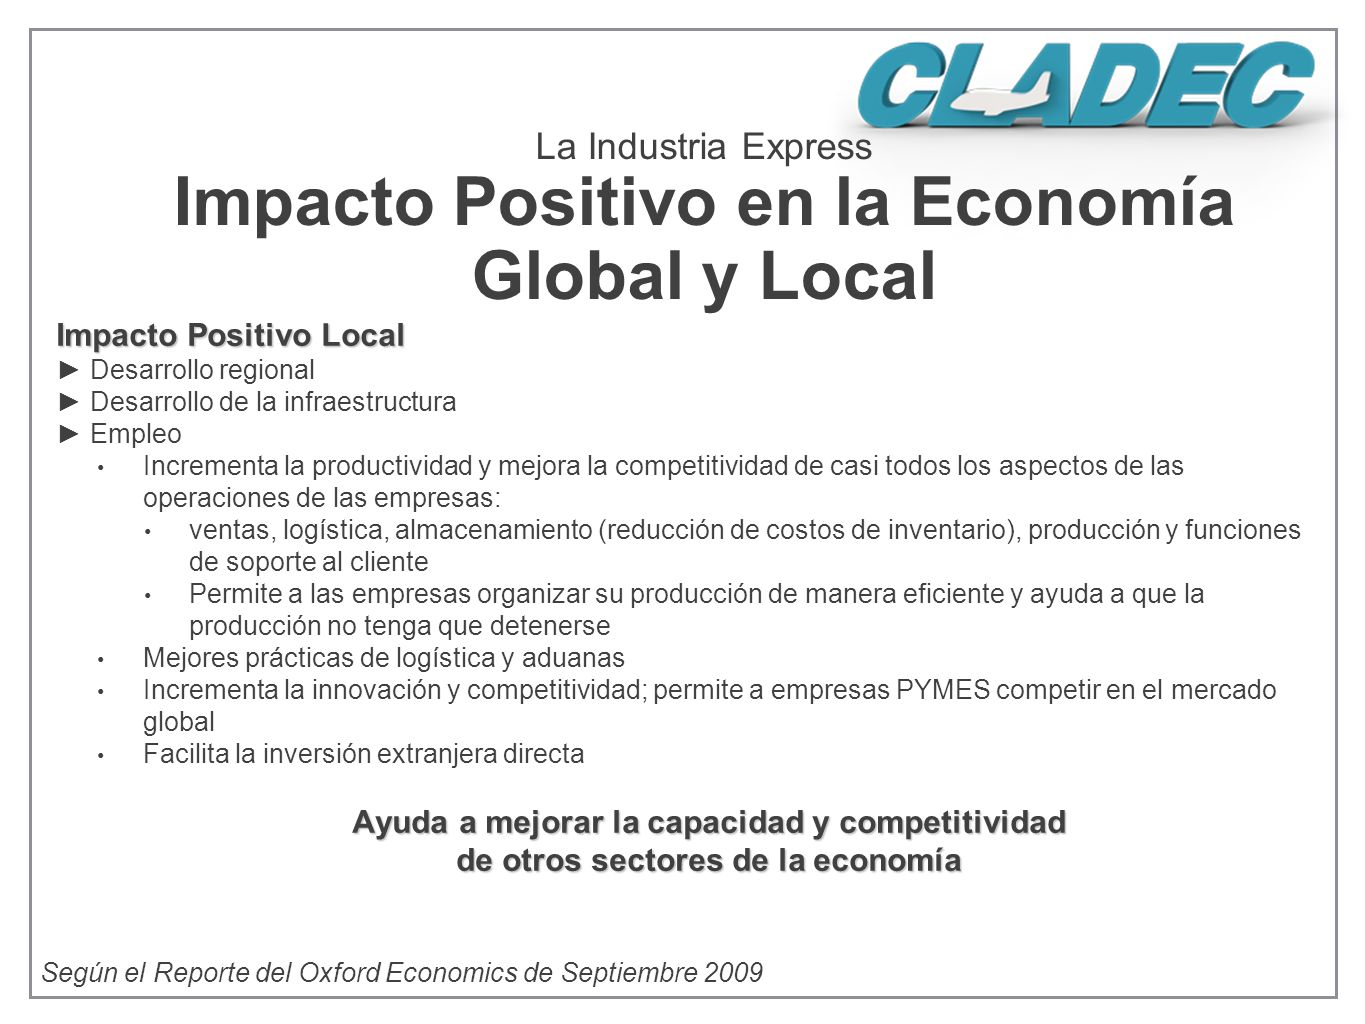 La Industria Express Impacto Positivo en la Economía Global y Local